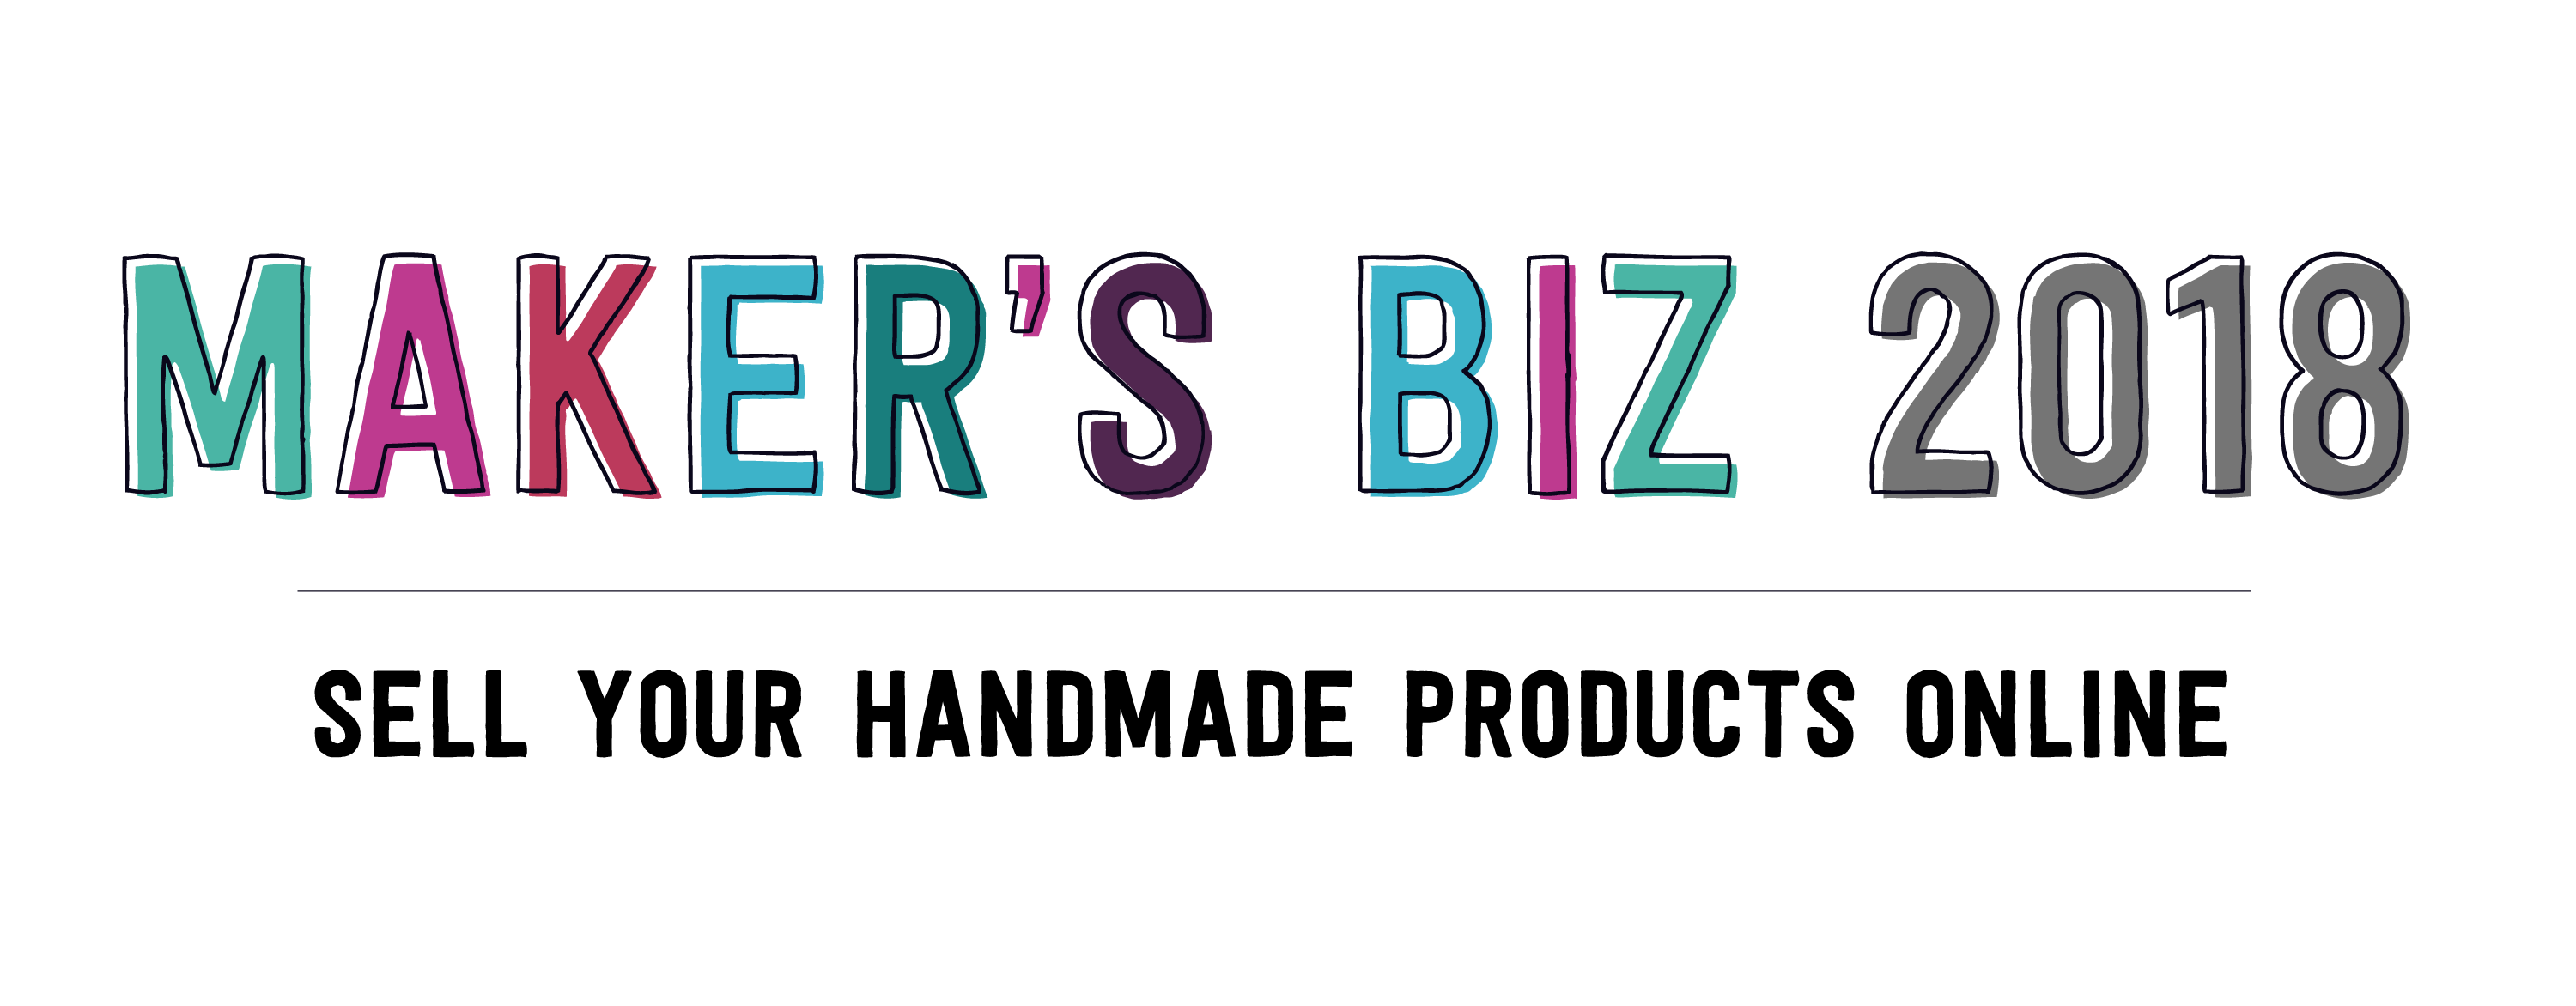 Makers Biz 2018